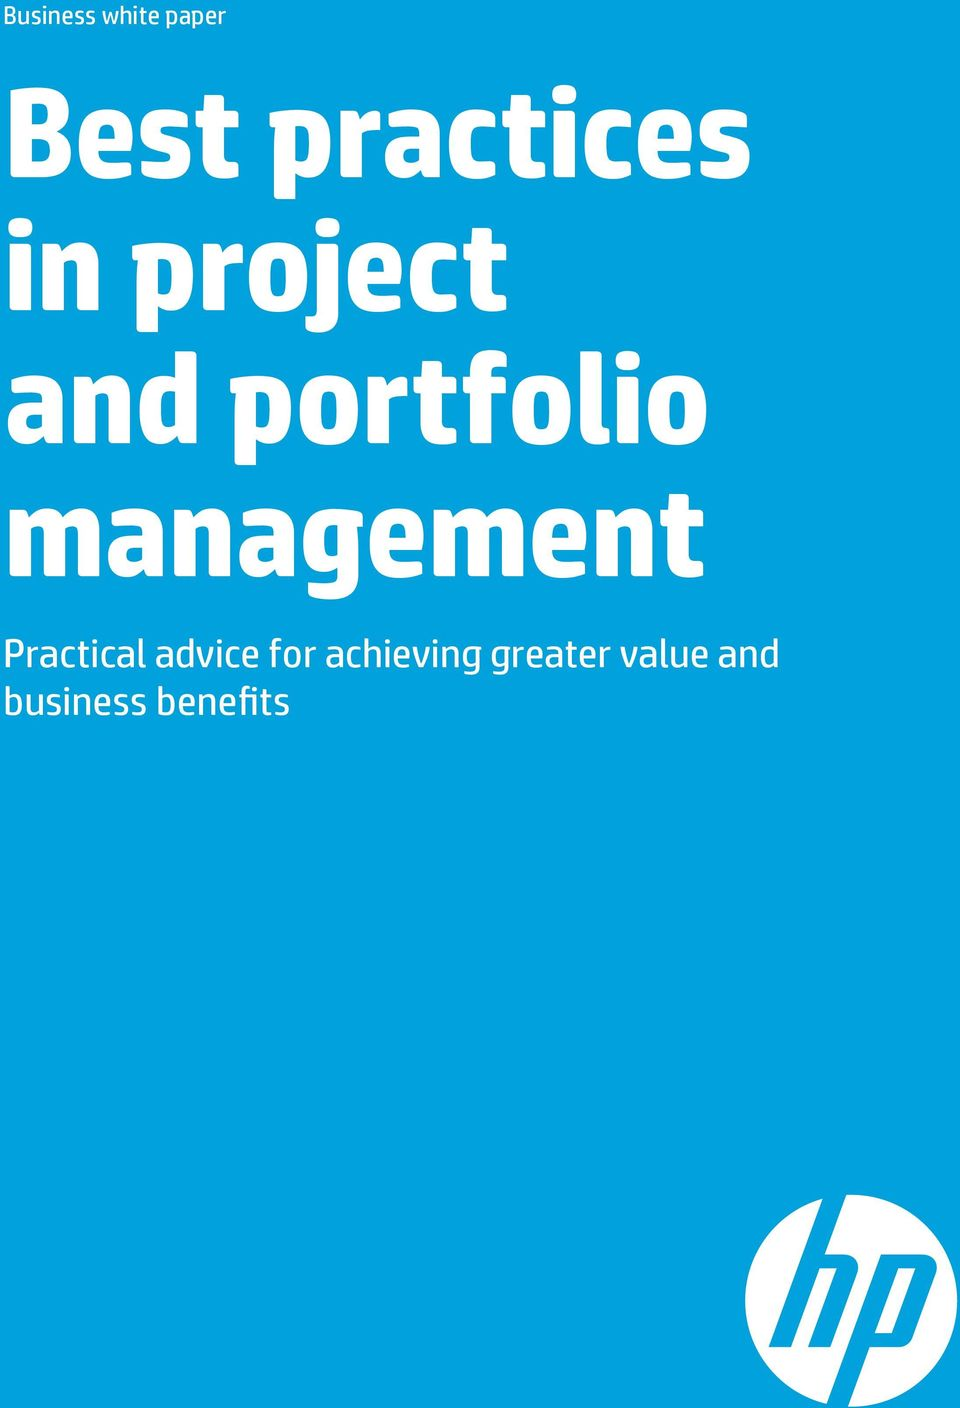 management Practical advice for